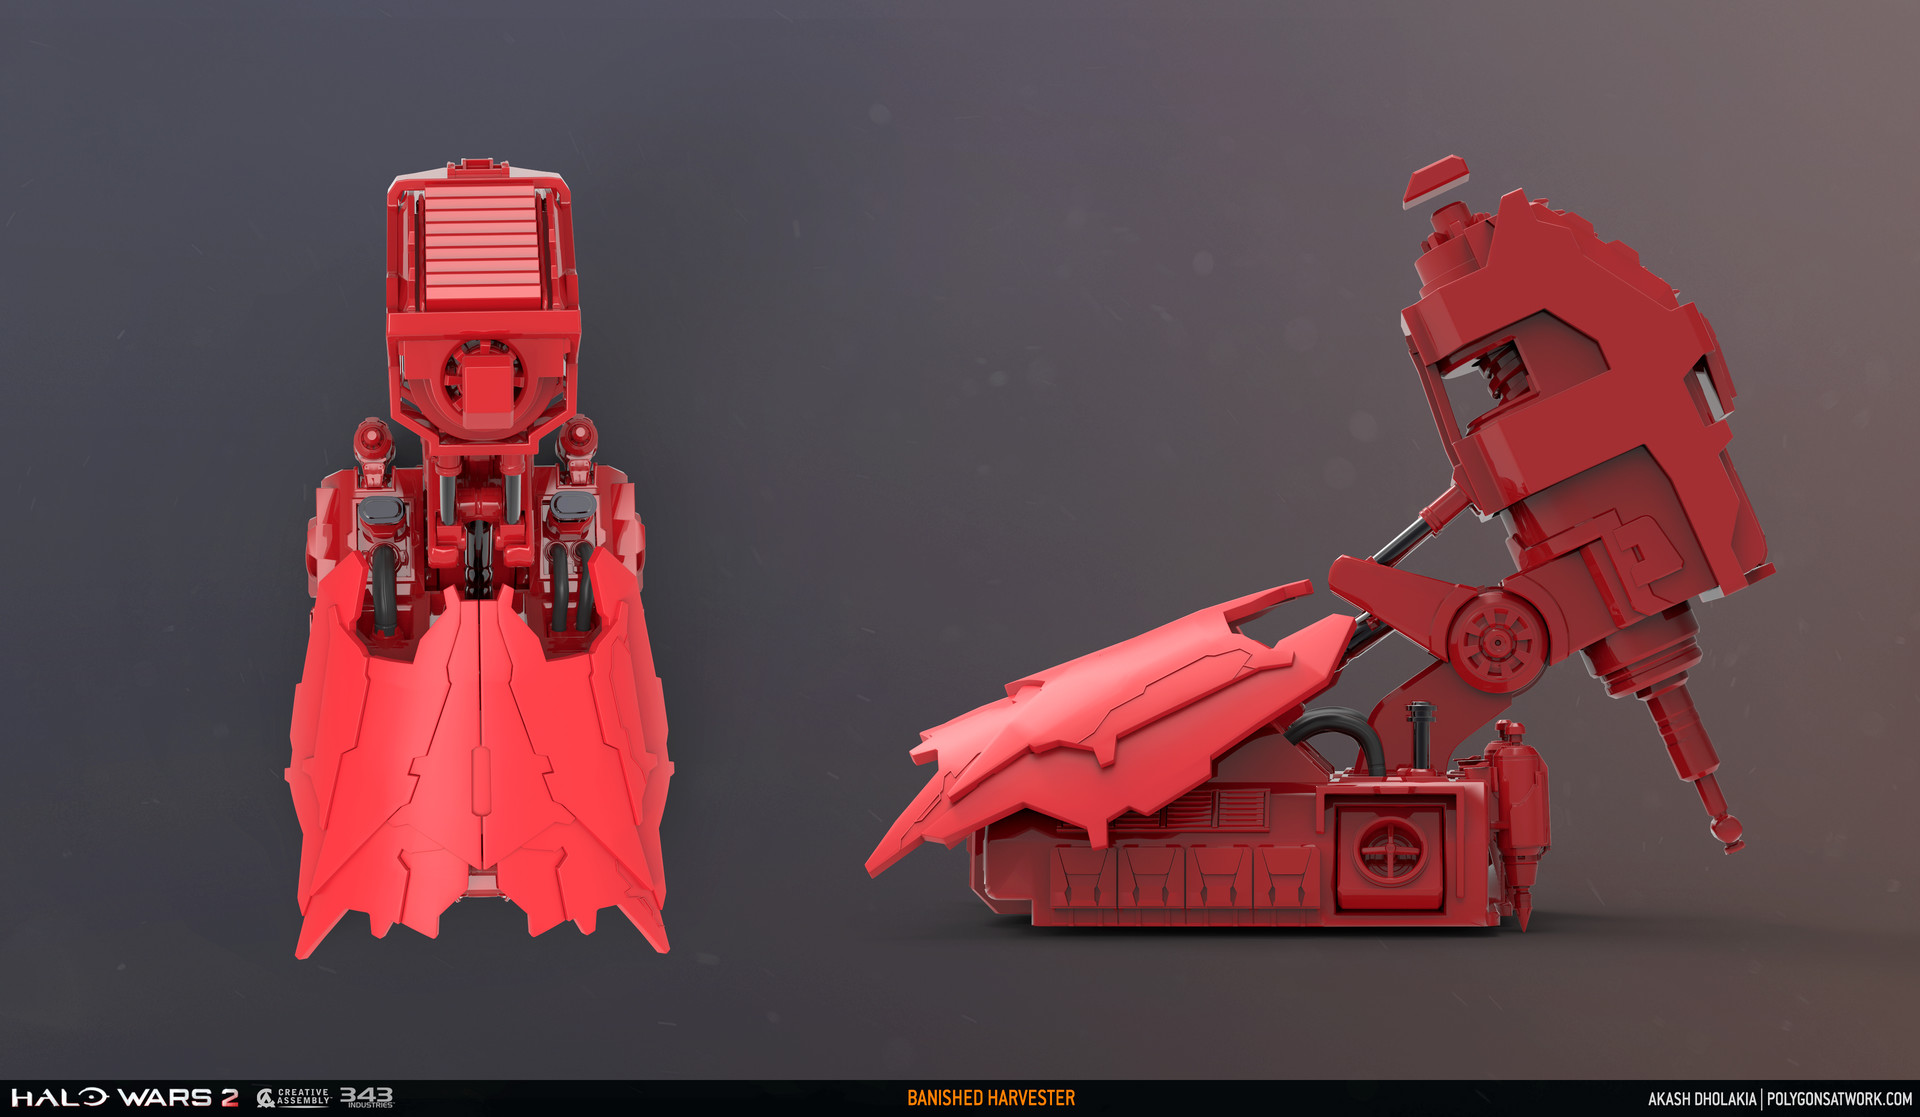 Akash dholakia halo wars 2 harvester 01